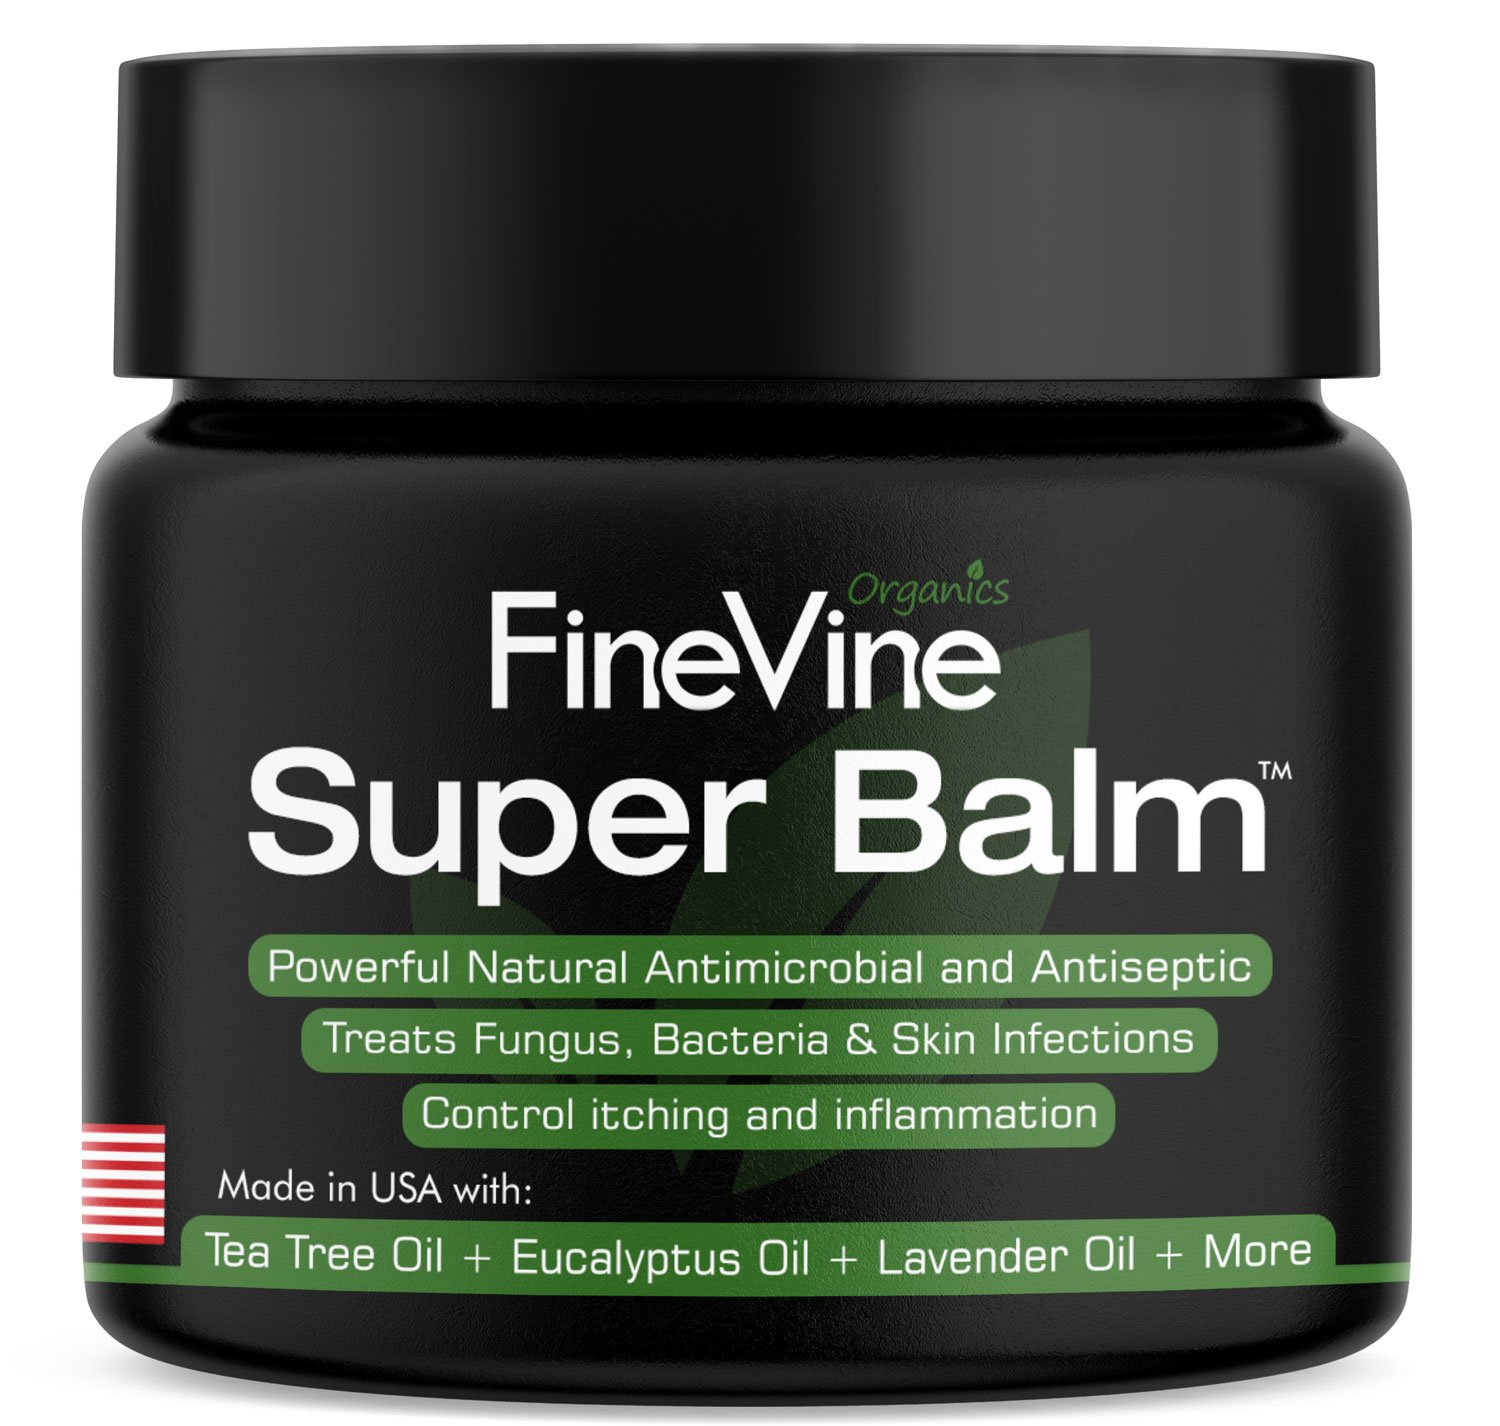 Antifungal Balm - Made in USA - Helps Treat Eczema, Ringworm, Jock Itch, Athletes Foot and Nail Fungal Infections - Best Natural Ointment to Soothes Itchy, Scaly or Cracked Skin.